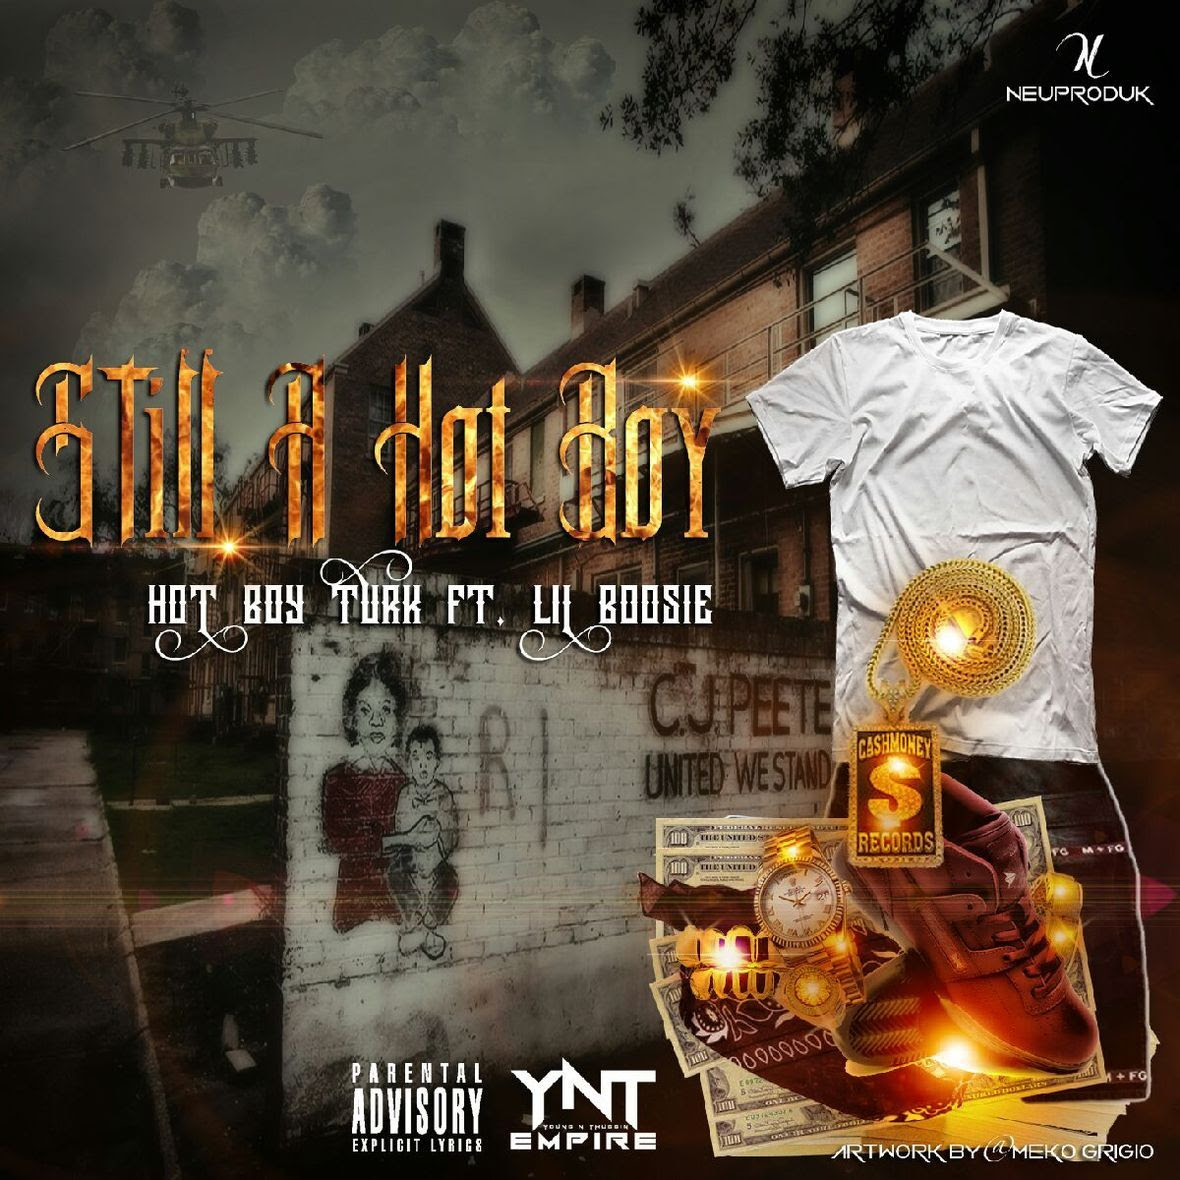 Hot Boy Turk- Still A Hot Boy